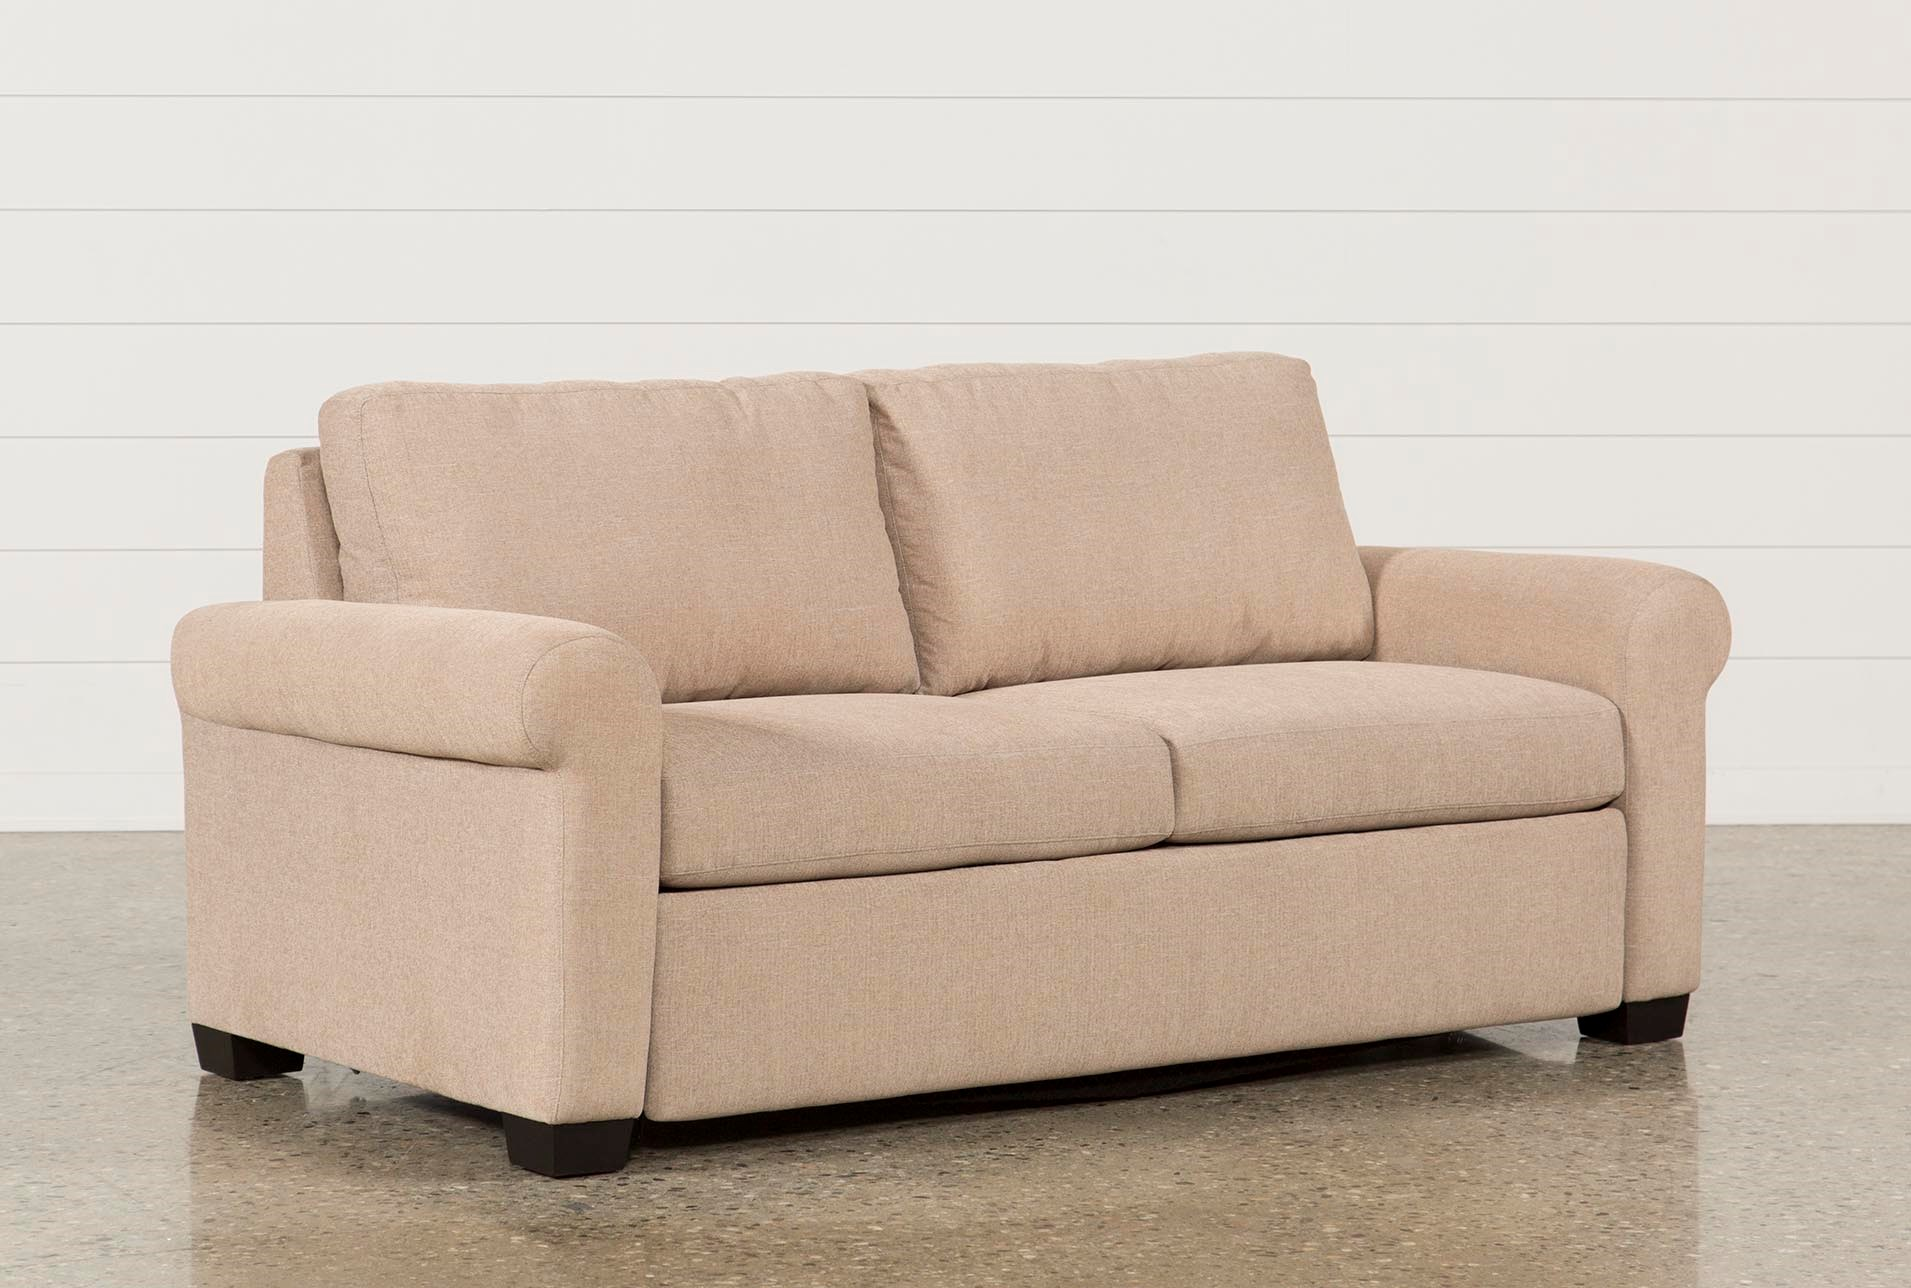 Sofa Beds Free Assembly With Delivery Living Spaces ~ Leather Sleeper Sofa Queen